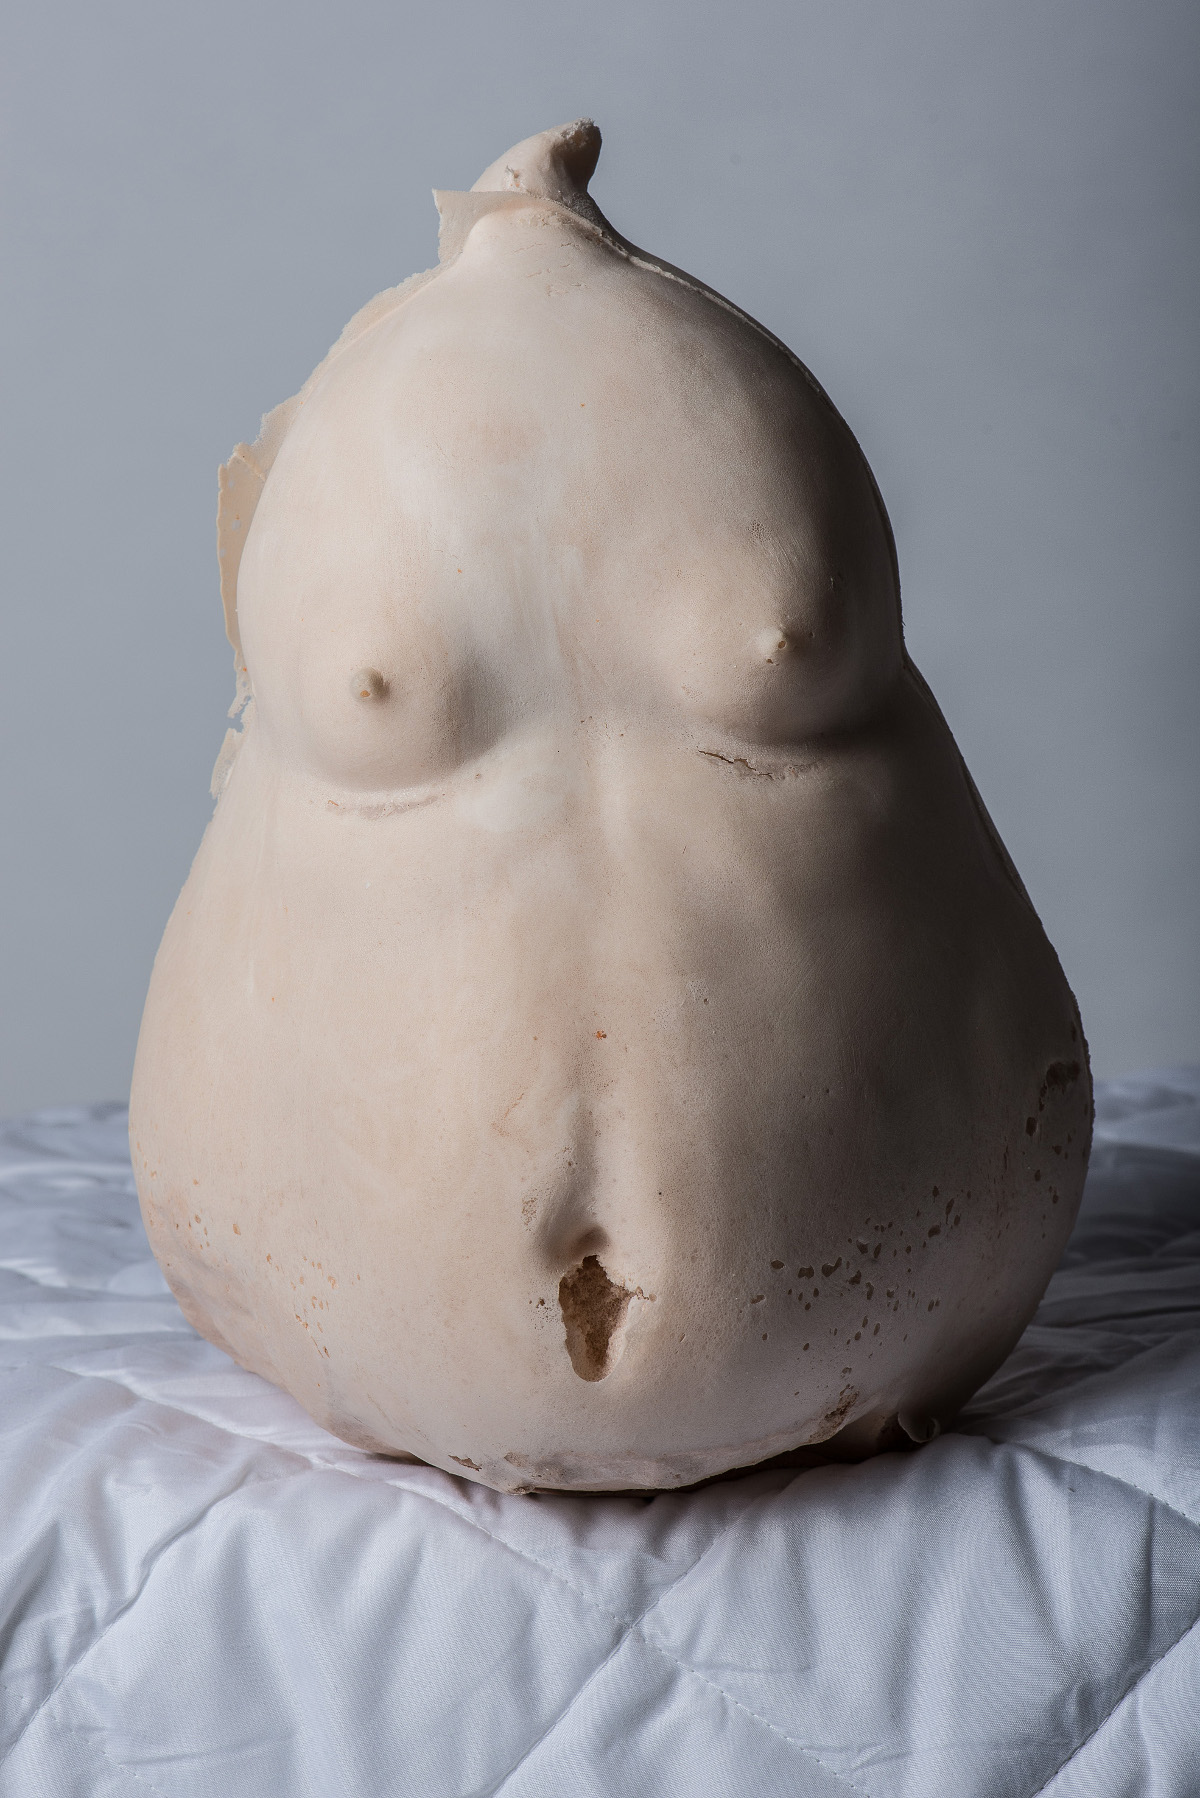 <strong>Torso, polyurethane foam, 2014</strong><br />This work is about the effects of institutions and individuals. That is they always somehow influenced and shaped like an empty vessel. These are changes that can affect individuals both inside and physiologically.